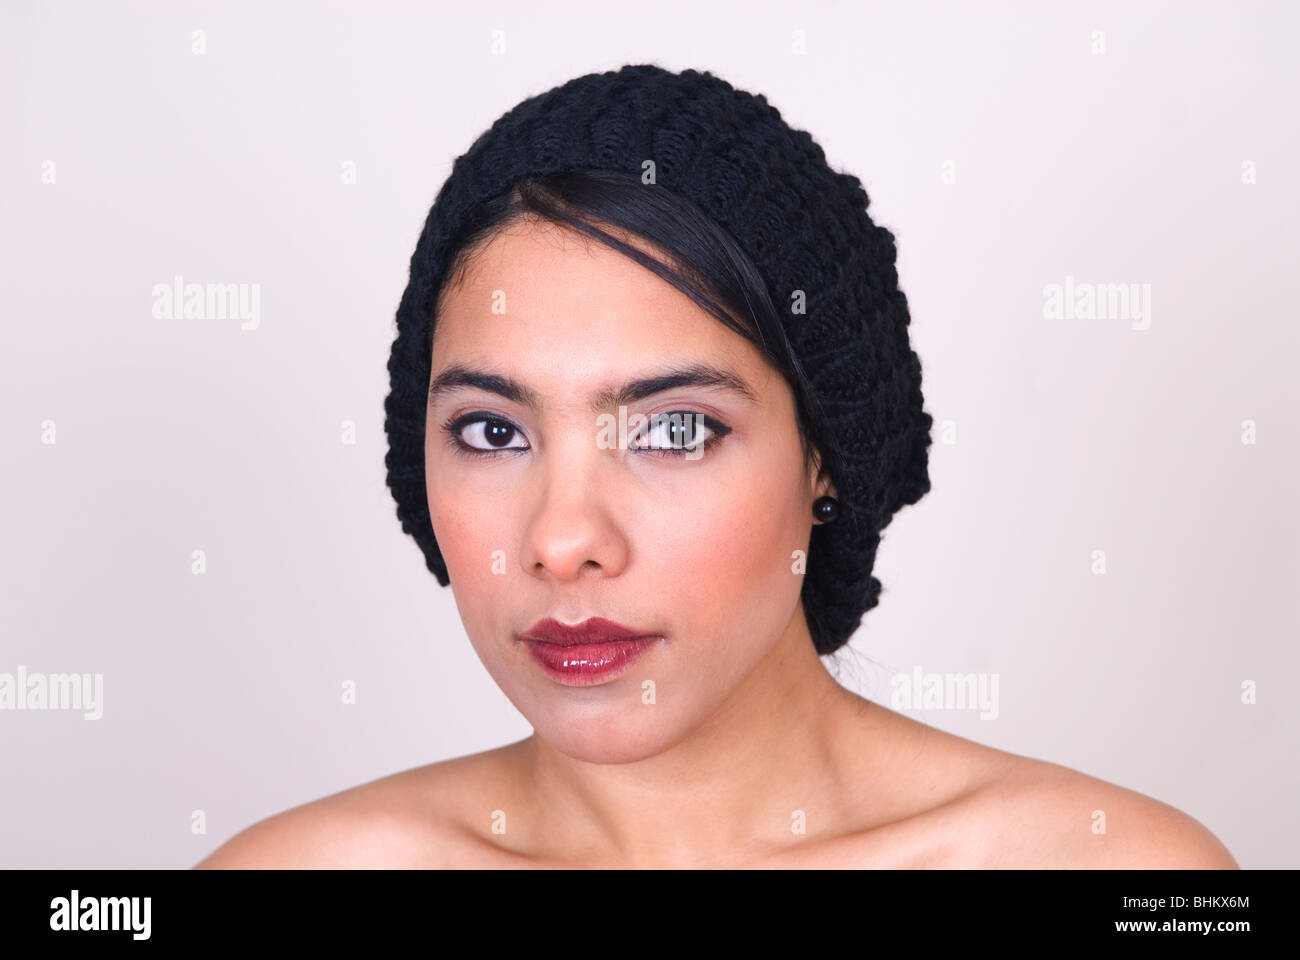 Beautiful ethnic woman wearing a woolen hat looking at camera - Stock Image